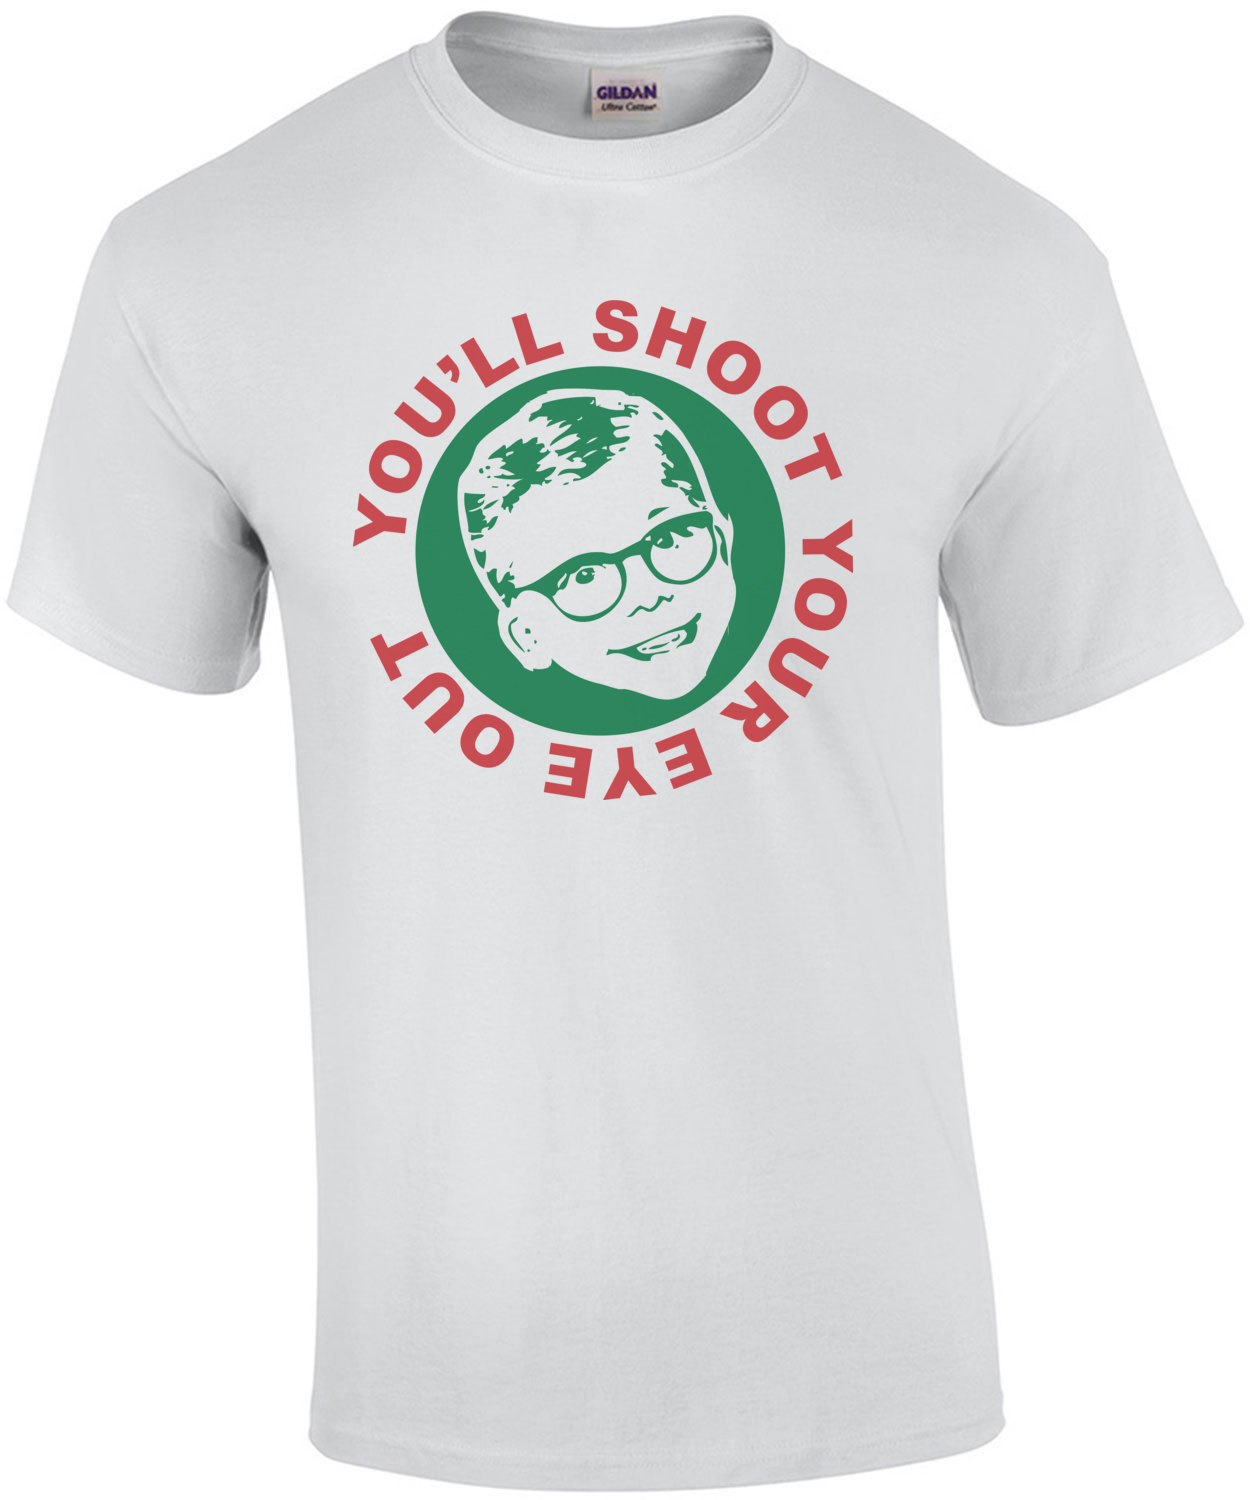 You'll Shoot Your Eye Out - Christmas Story Kids T-shirt